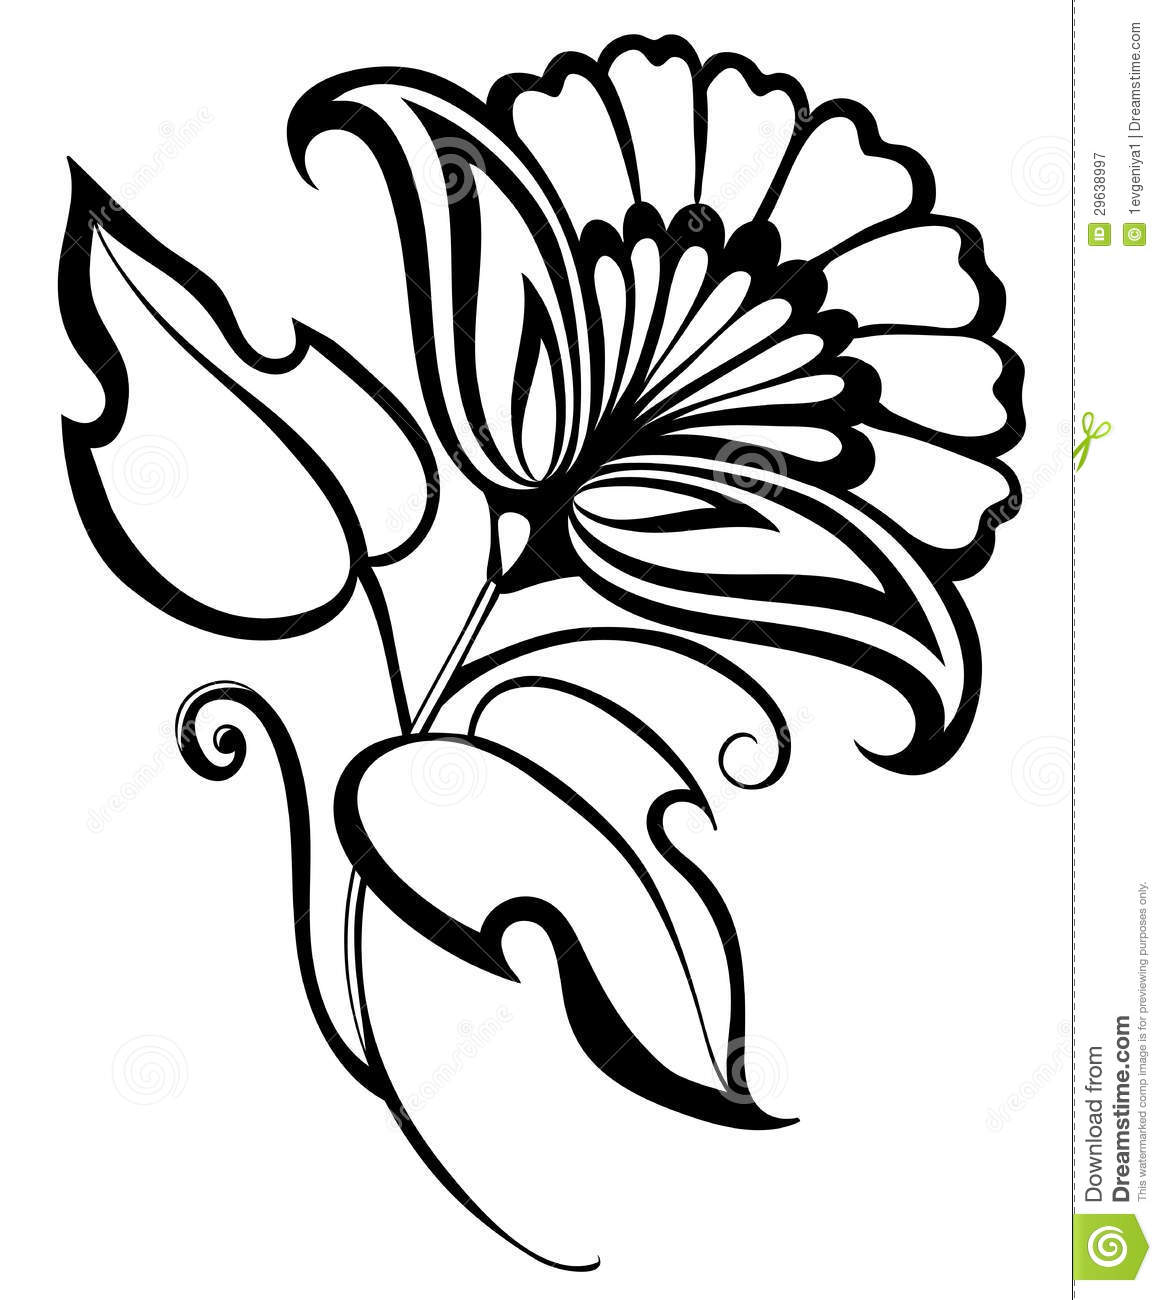 Black And White Drawing Designs At Getdrawings Free For